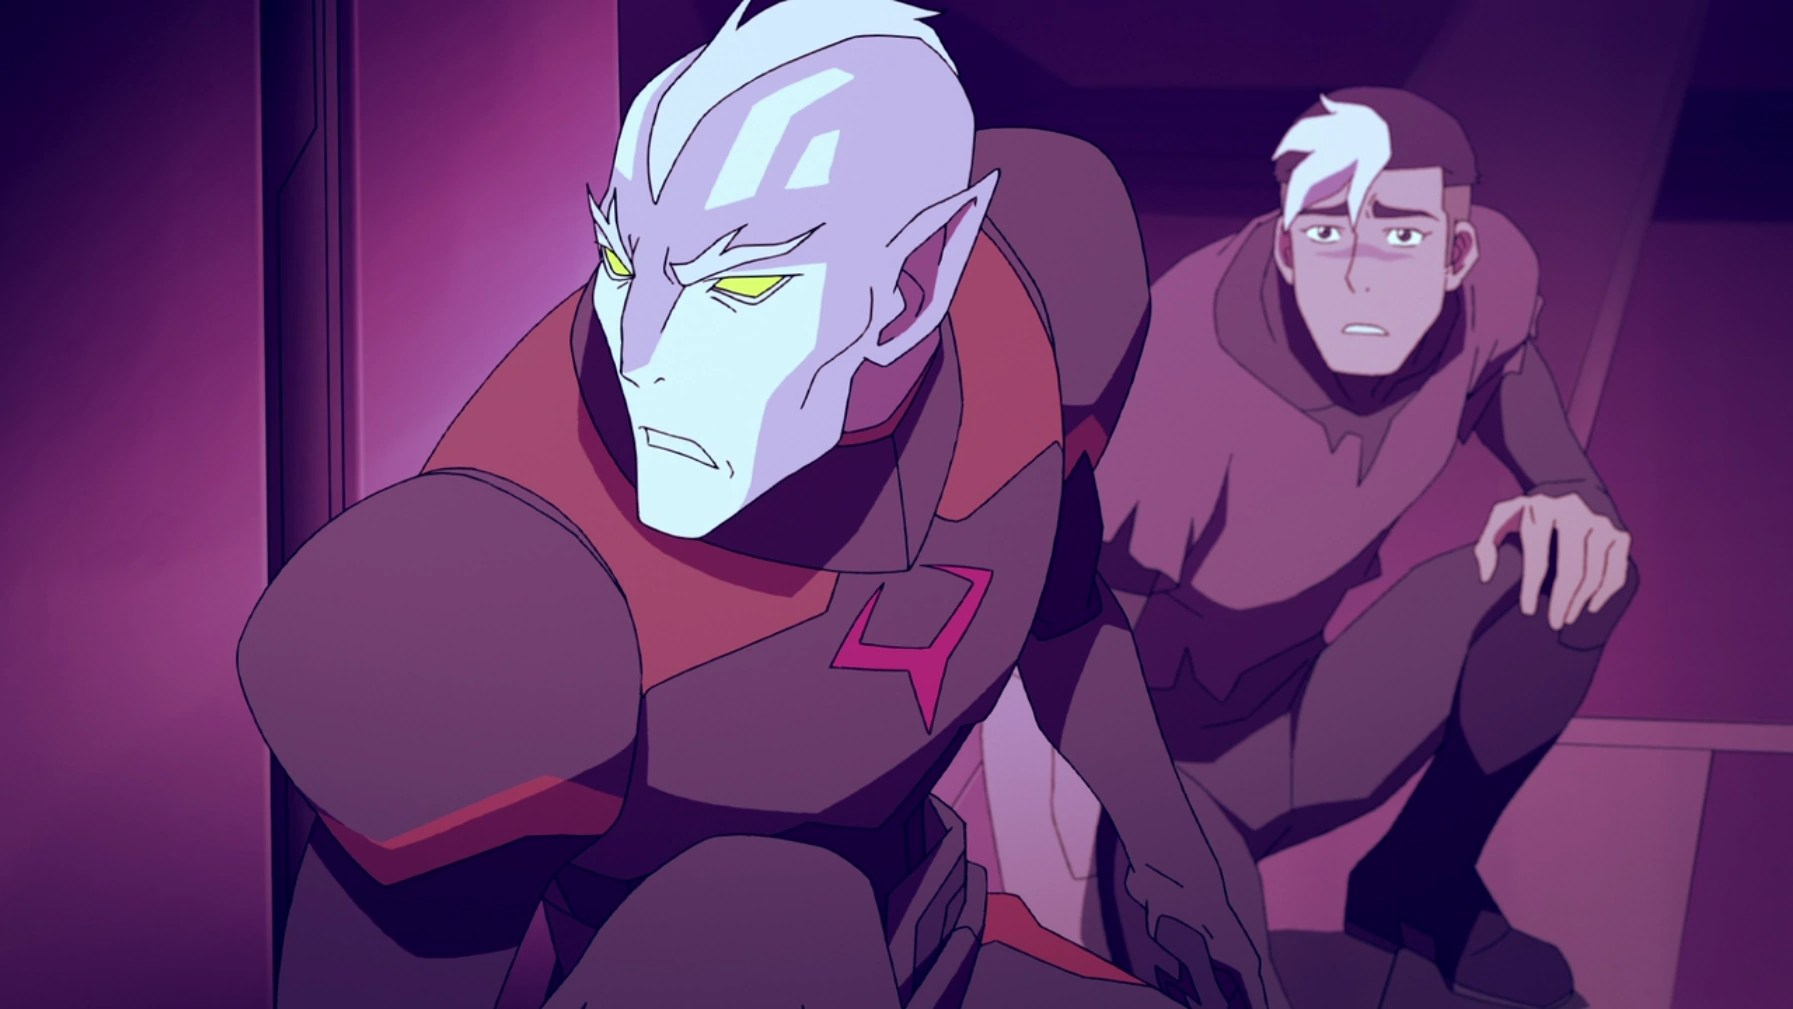 20 Voltron Force Shiro Sendak Pictures And Ideas On Meta Networks